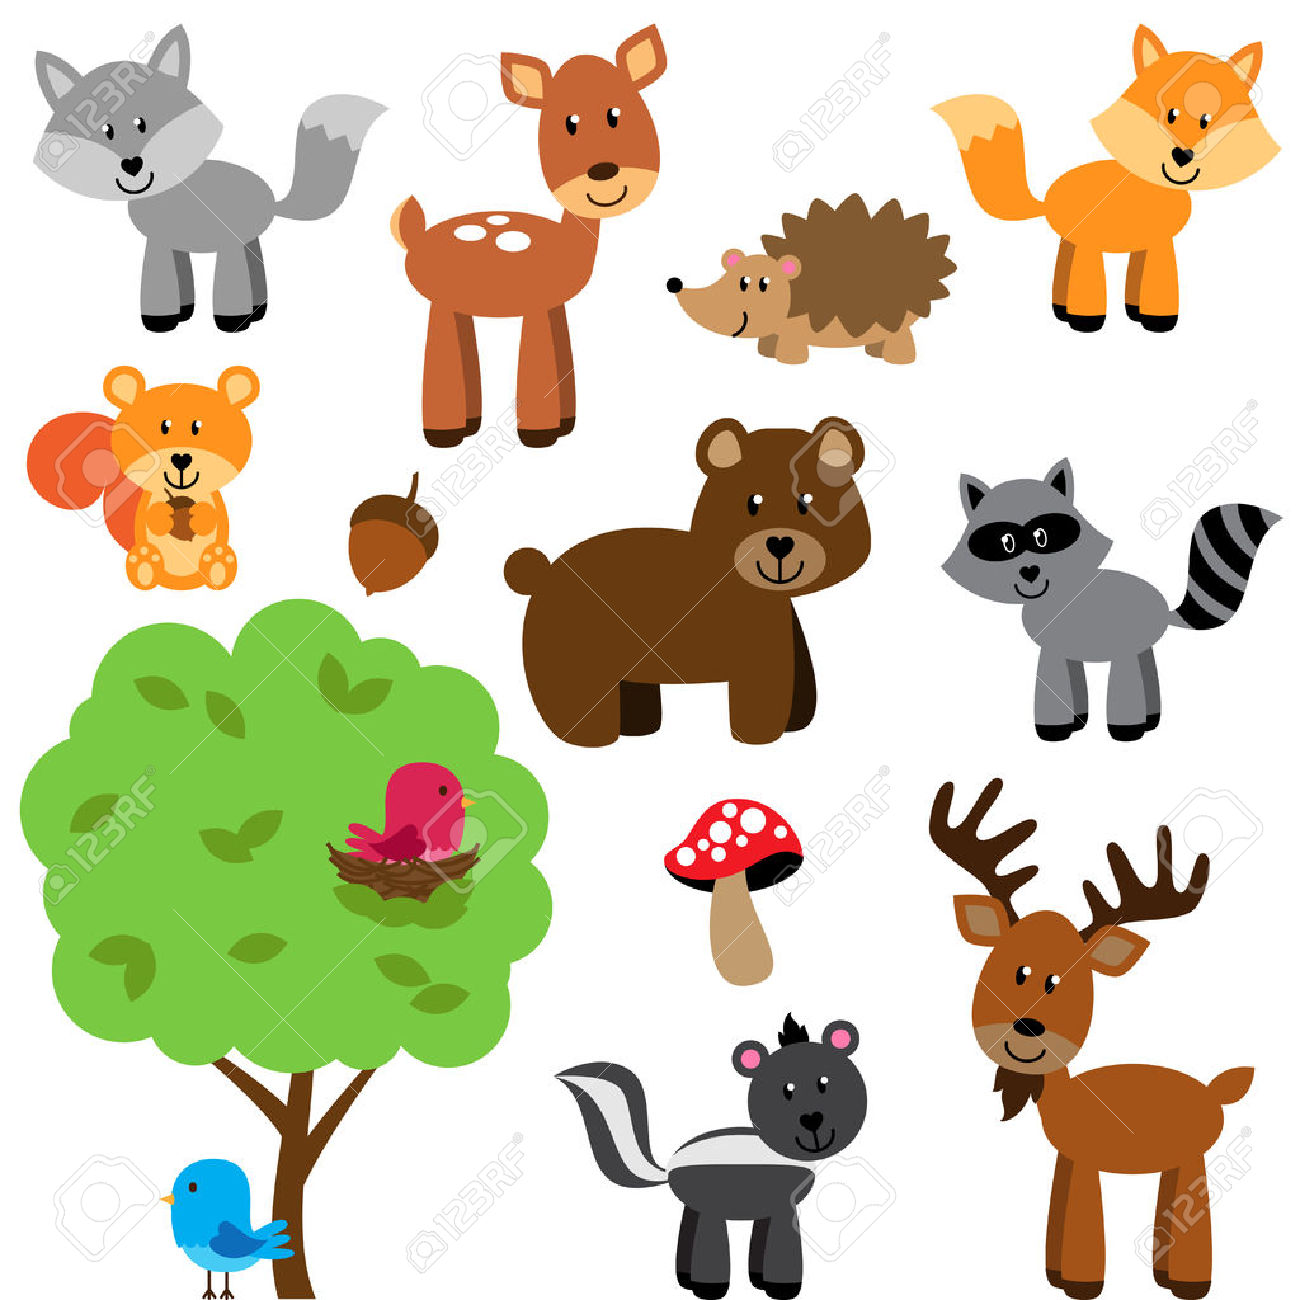 Animal stock clipart jpg transparent 3,772 Woodland Animal Stock Illustrations, Cliparts And Royalty ... jpg transparent